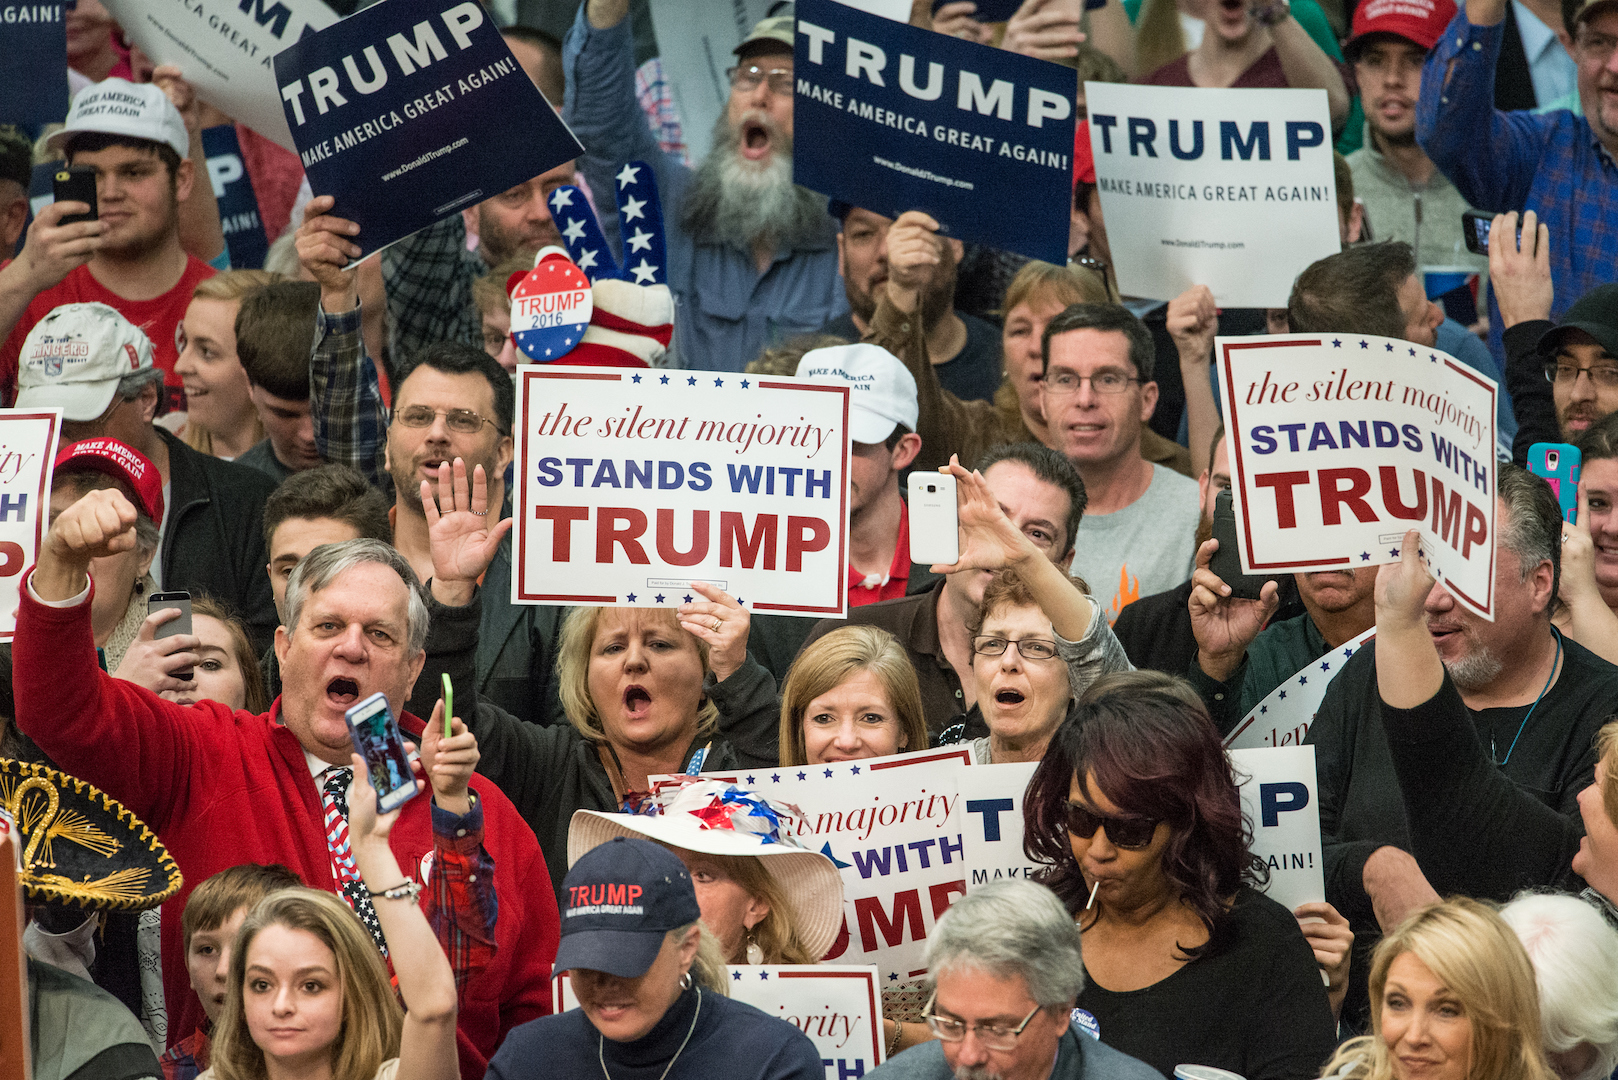 Donald Trump supporters cheer on the Republican presidential candidate before a campaign rally March 7, 2016 in Concord, North Carolina